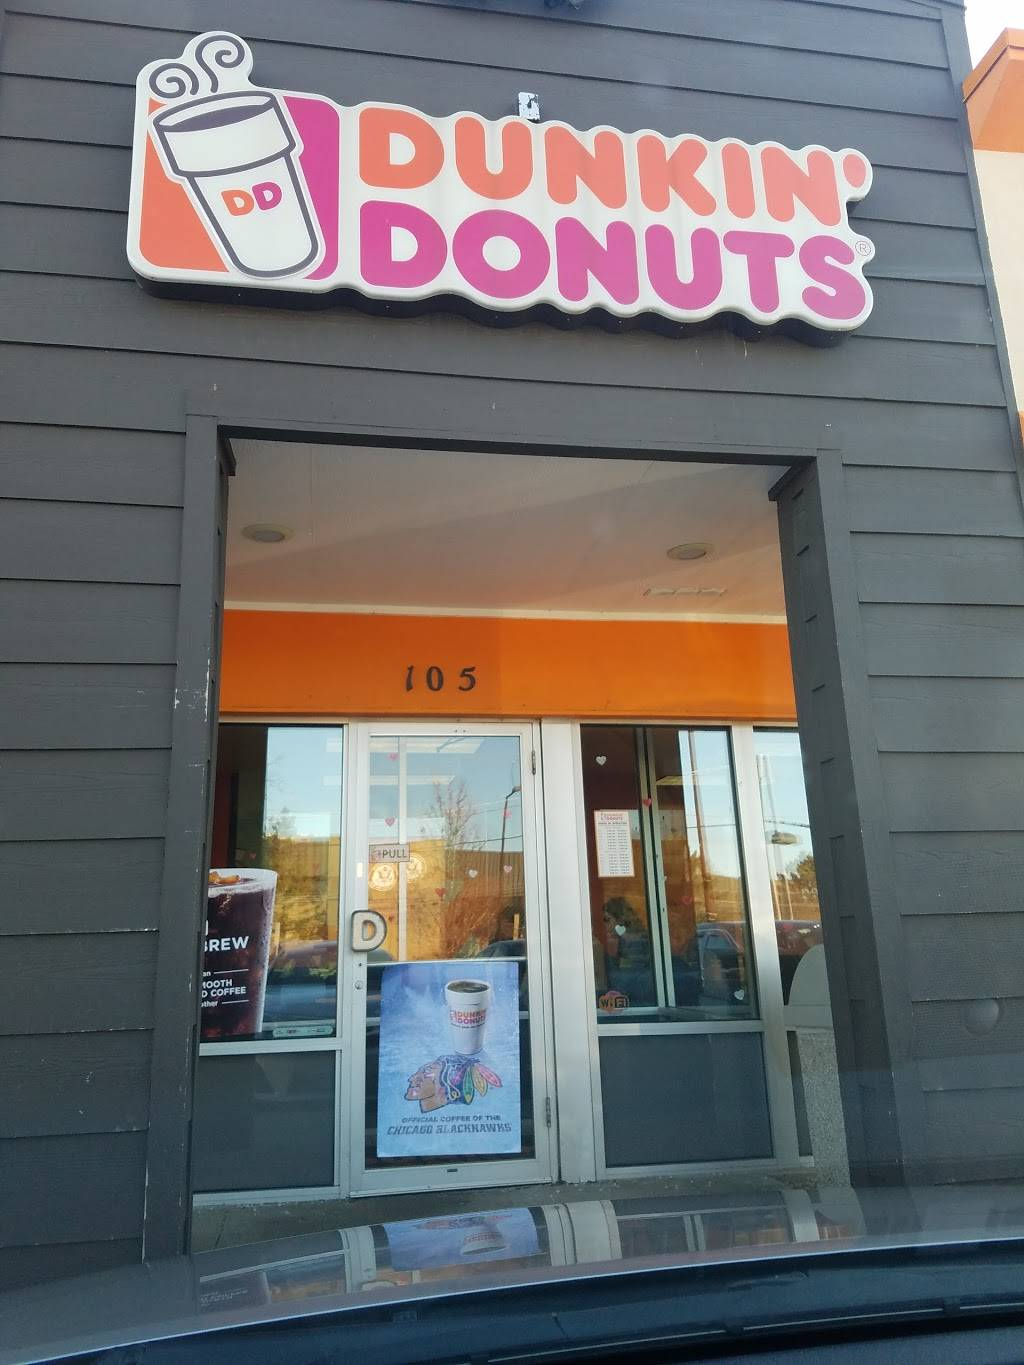 Dunkin Donuts   cafe   105 W Dundee Rd, Arlington Heights, IL 60004, USA   8473420406 OR +1 847-342-0406